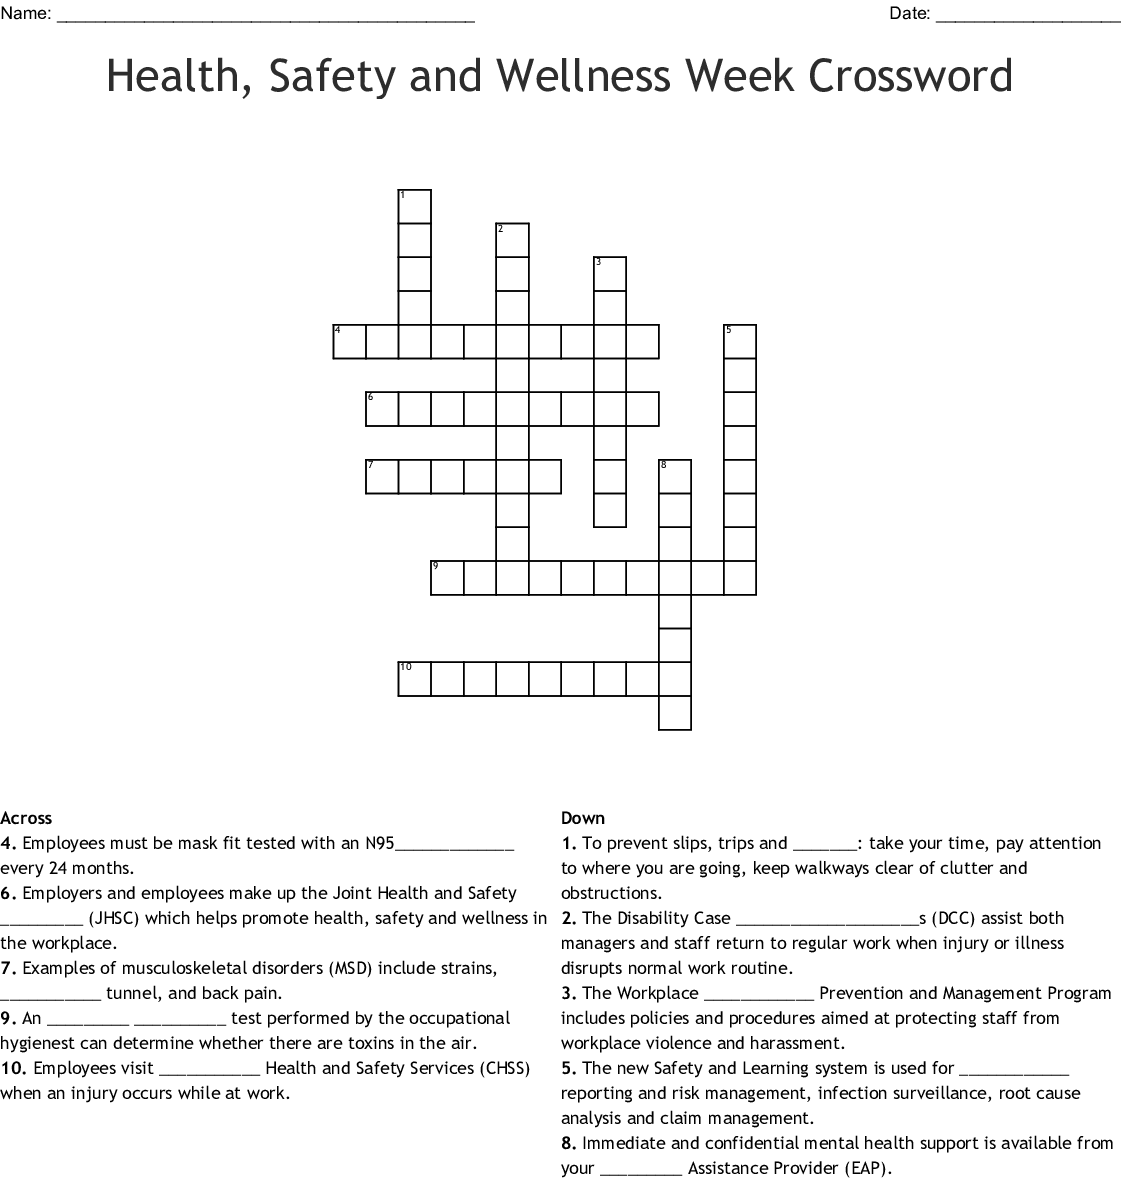 Health Safety And Wellness Week Crossword